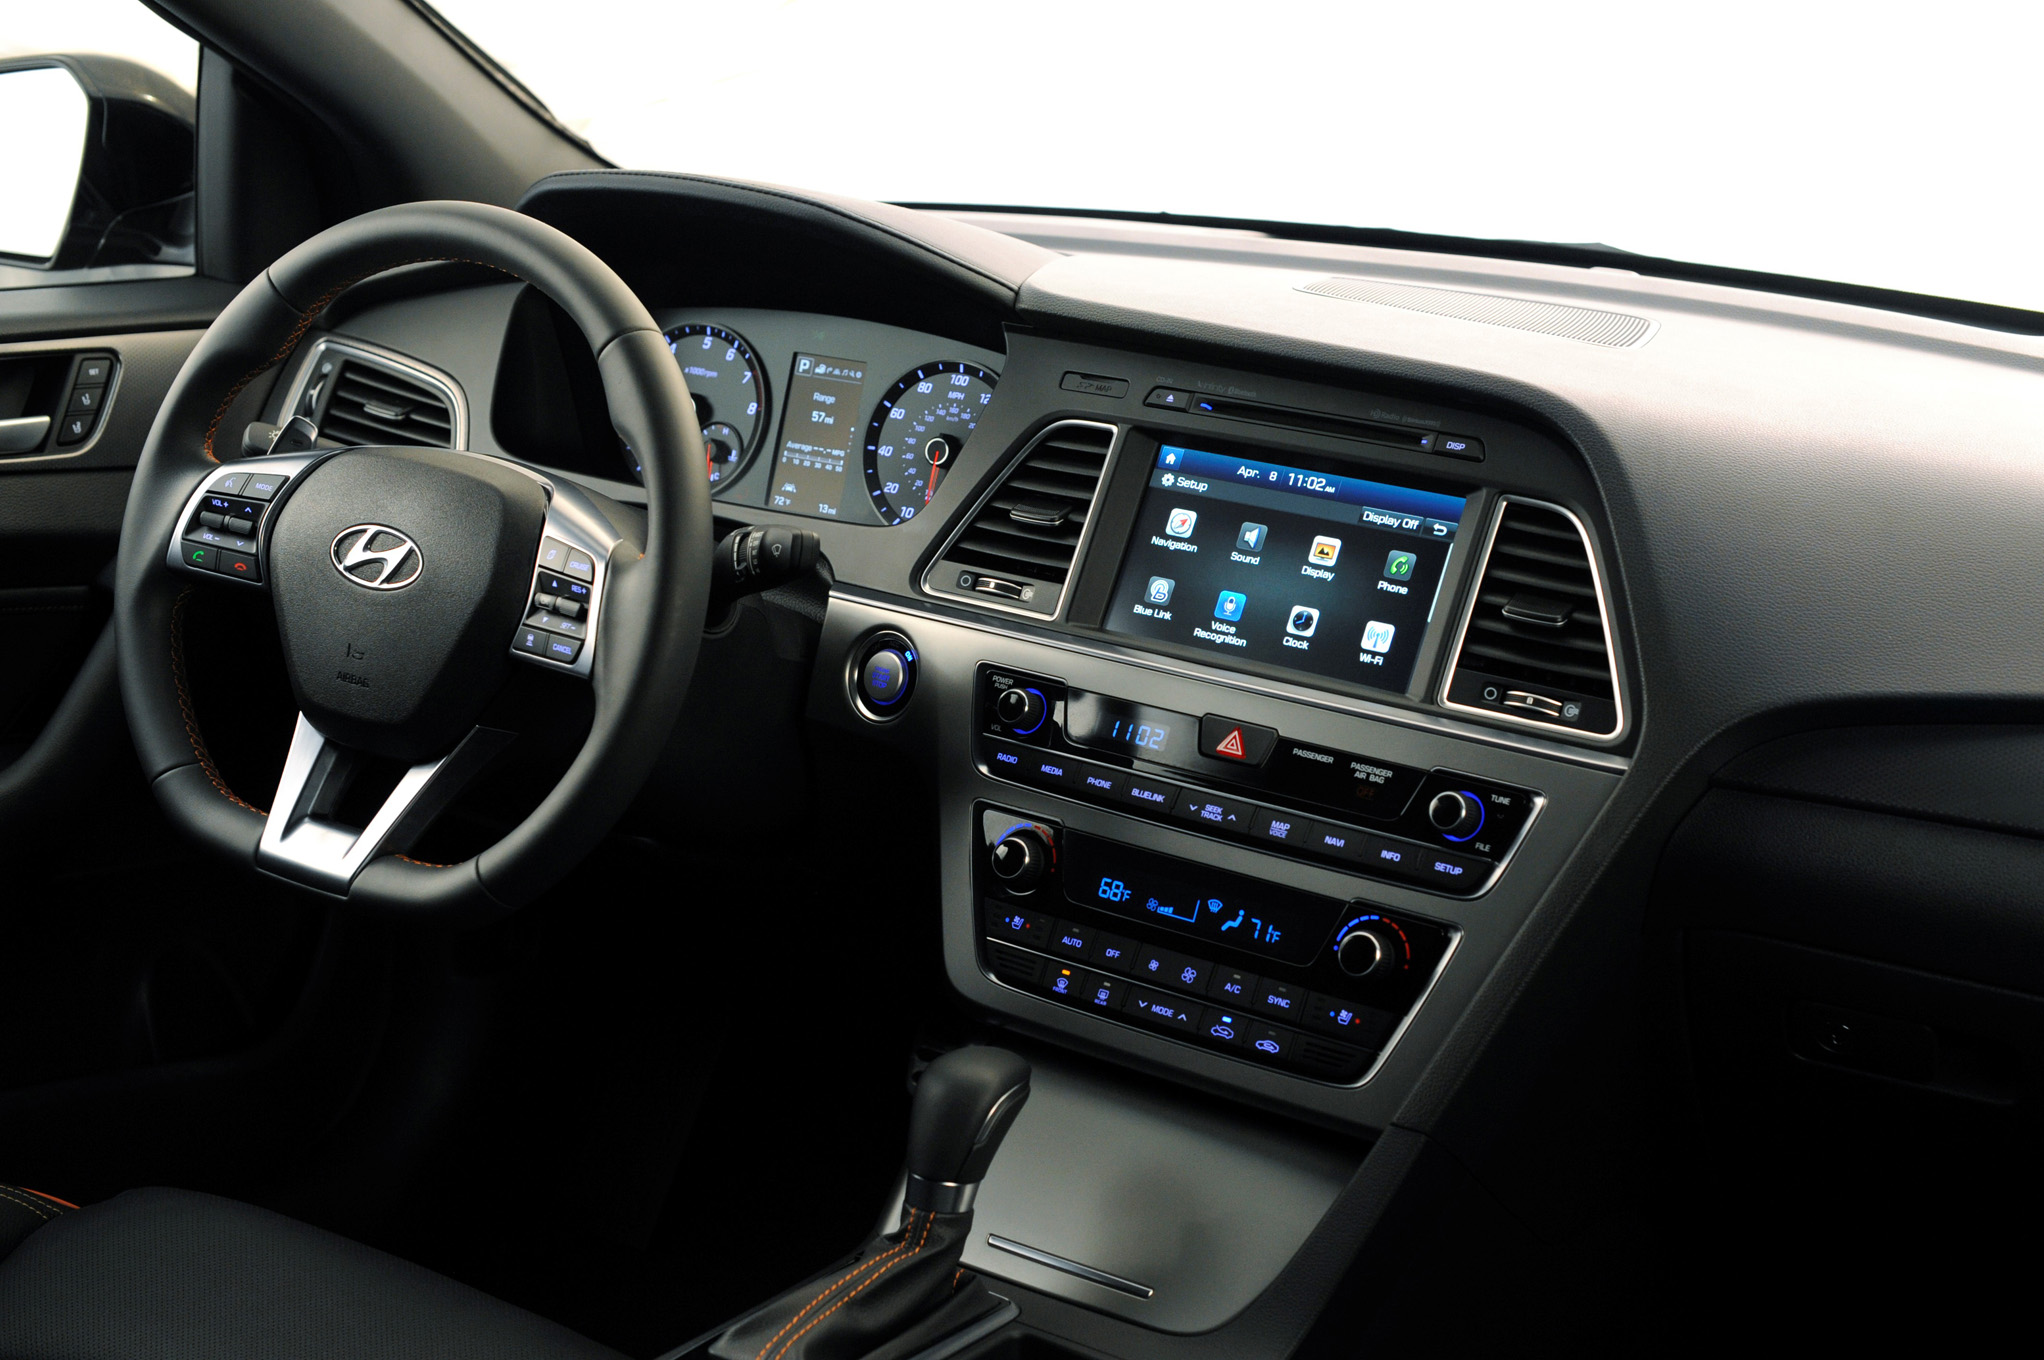 2015 Hyundai Sonata Dash And Head Unit (Photo 2 of 11)